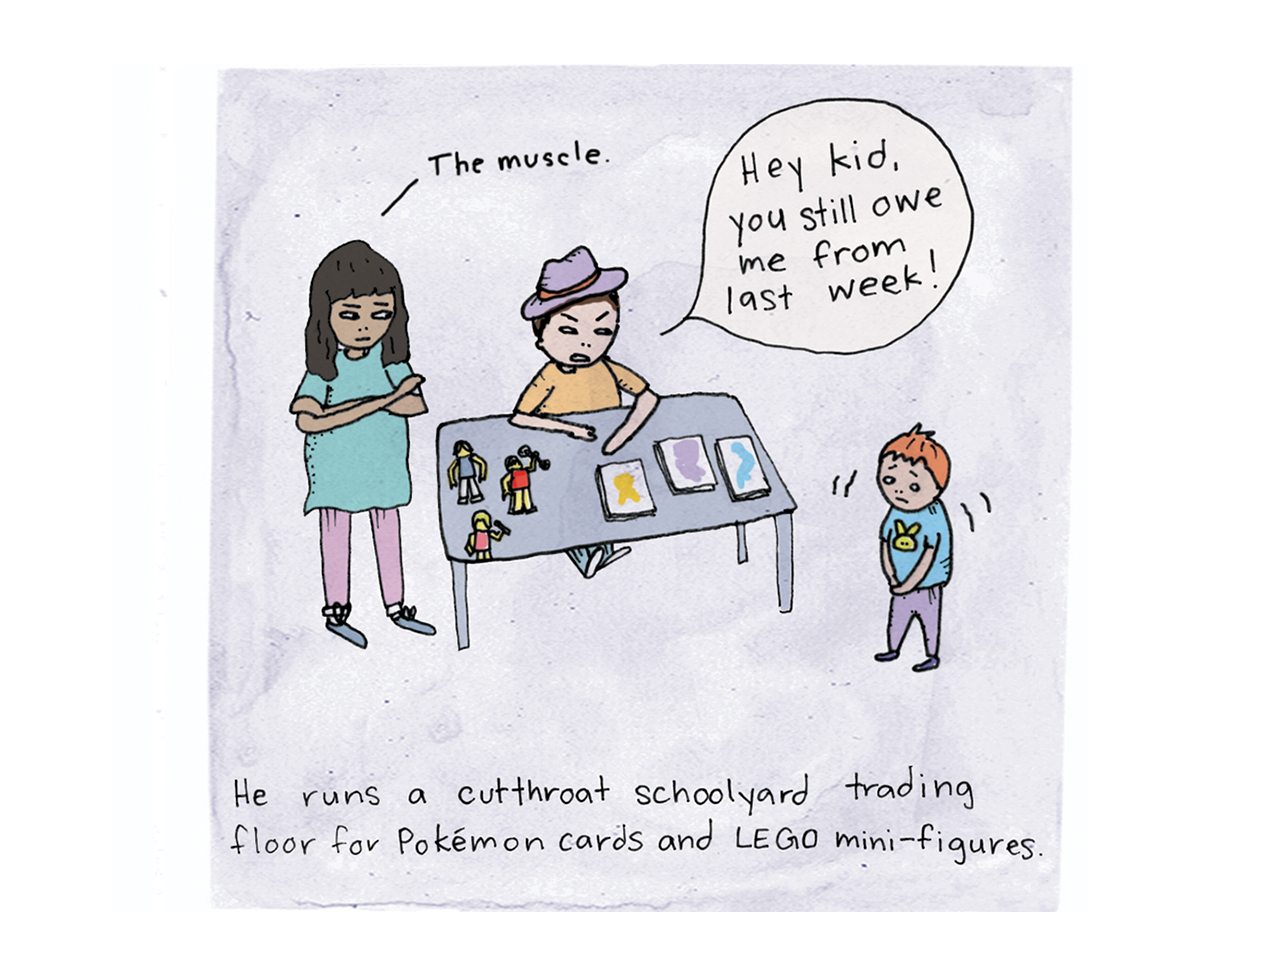 Illustration of a kid at a table with toys and cards on it. a nervous kids stands in front of the table and an angry looking girl stands off to the side with an arrow pointing to her saying The muscle. Caption reads He runs a cutthroat schoolyard trading floor for Pokemon cards and LEGO mini-figures